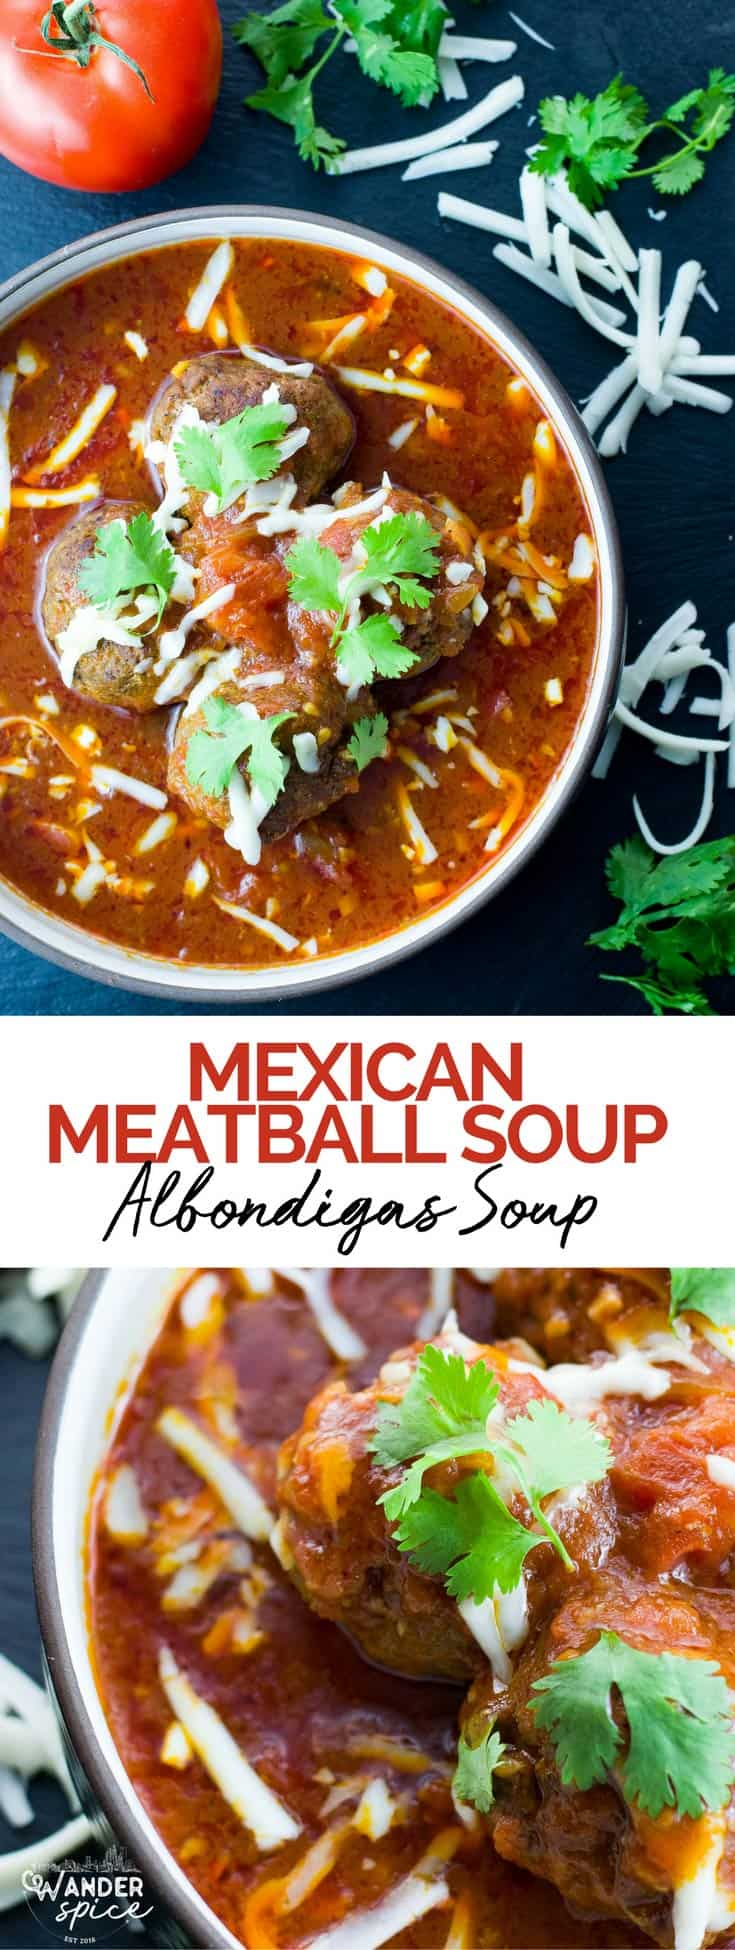 Mexican Meatball Soup Recipe - Albondigas-soup. Authentic and very easy to make.